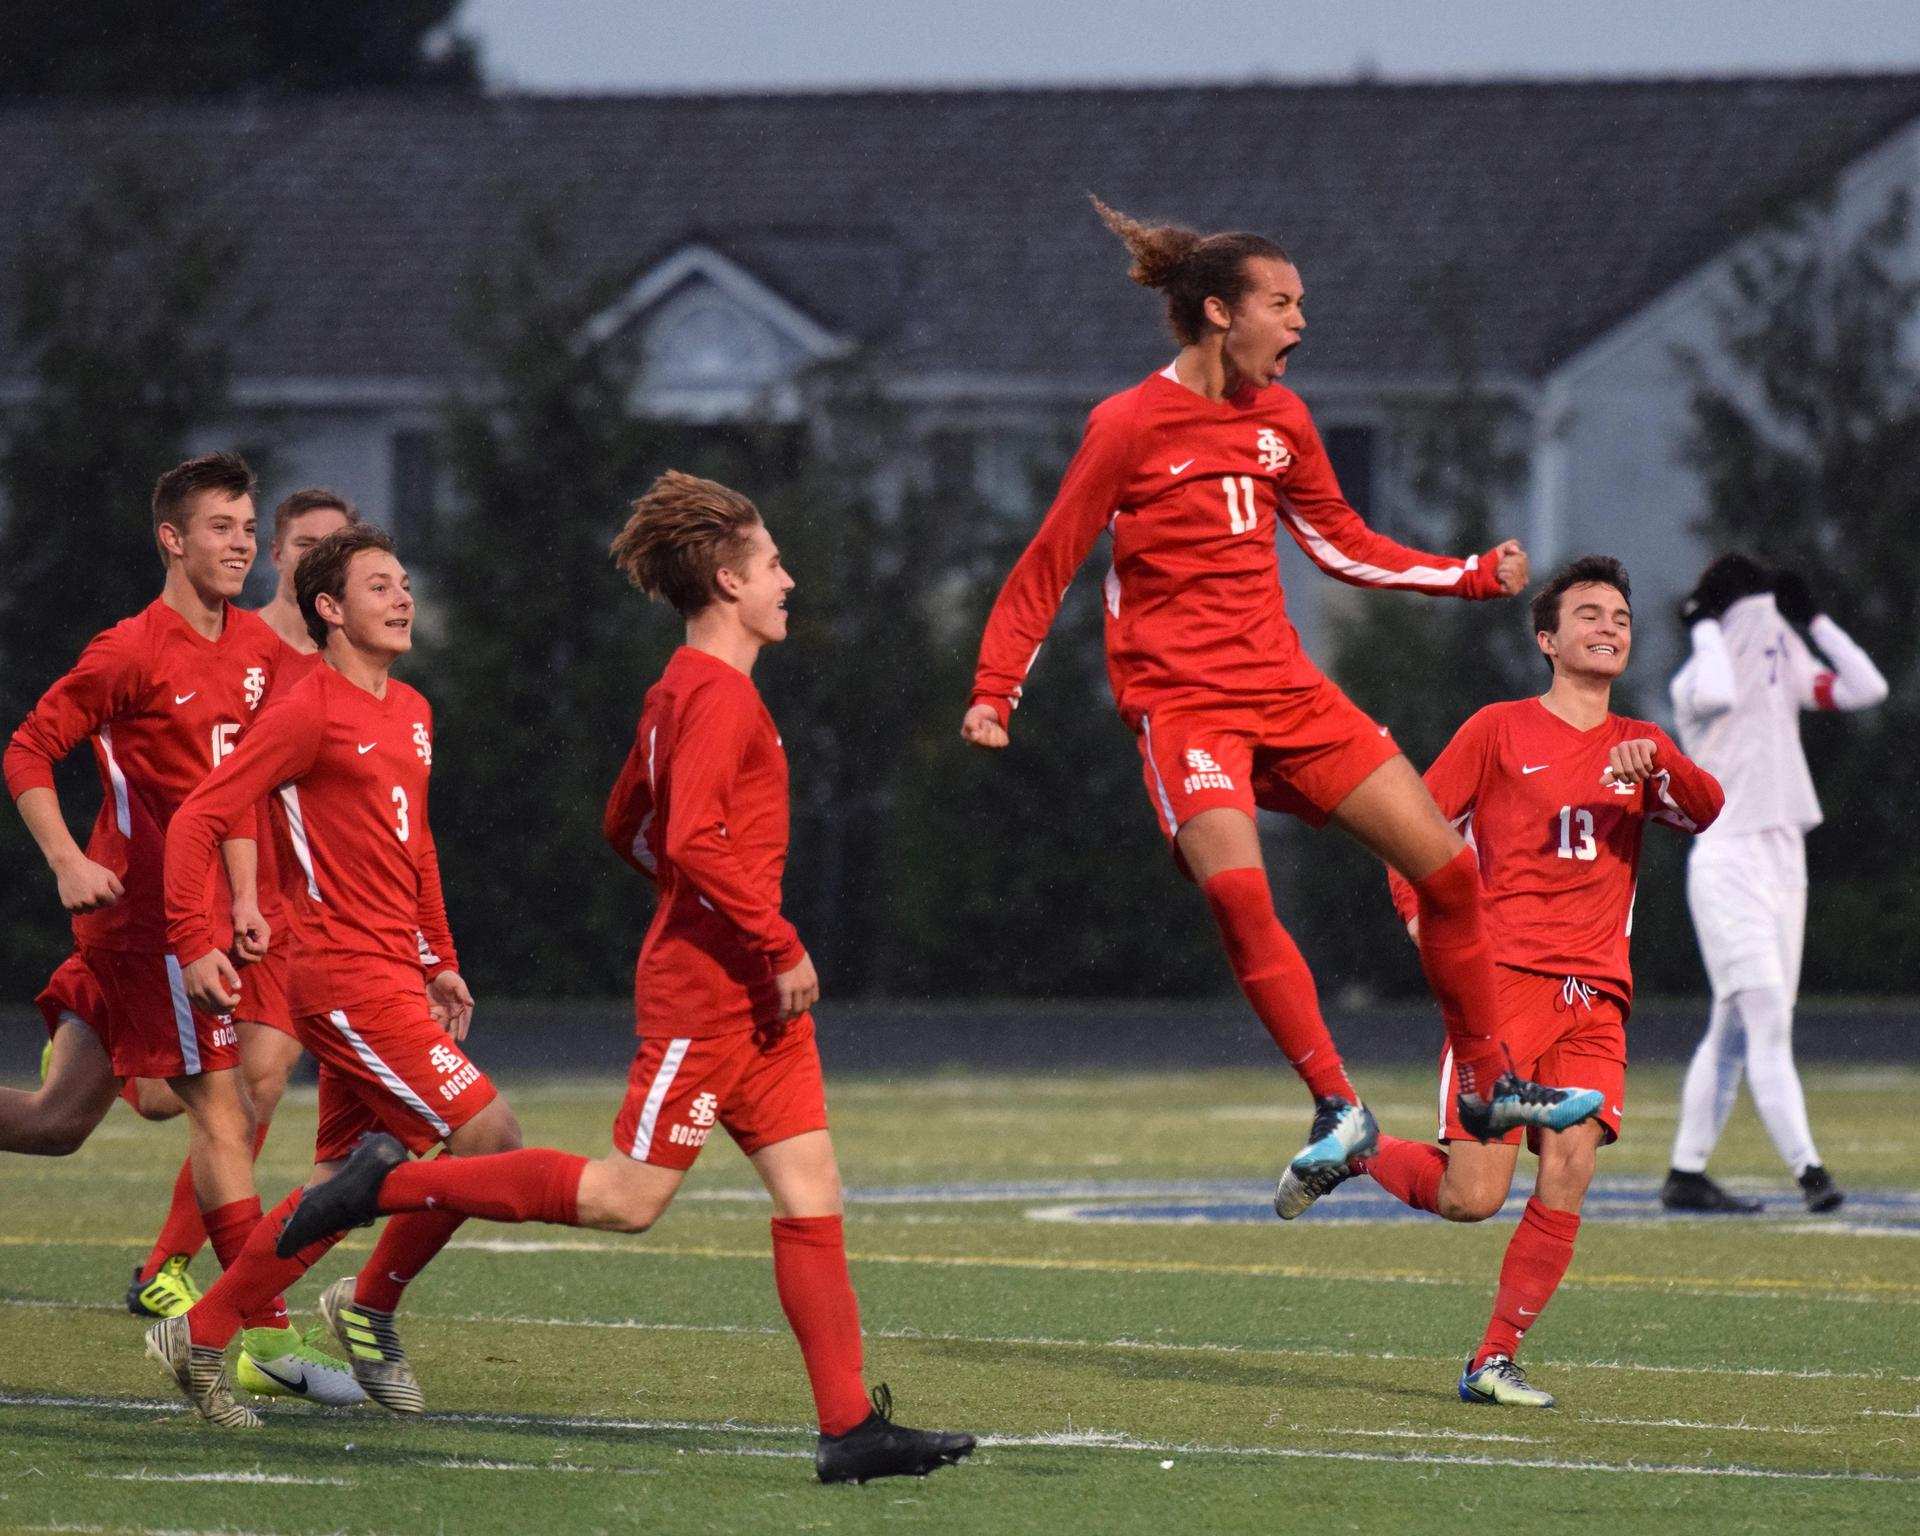 soccer players celebrate a goal and jump in the air